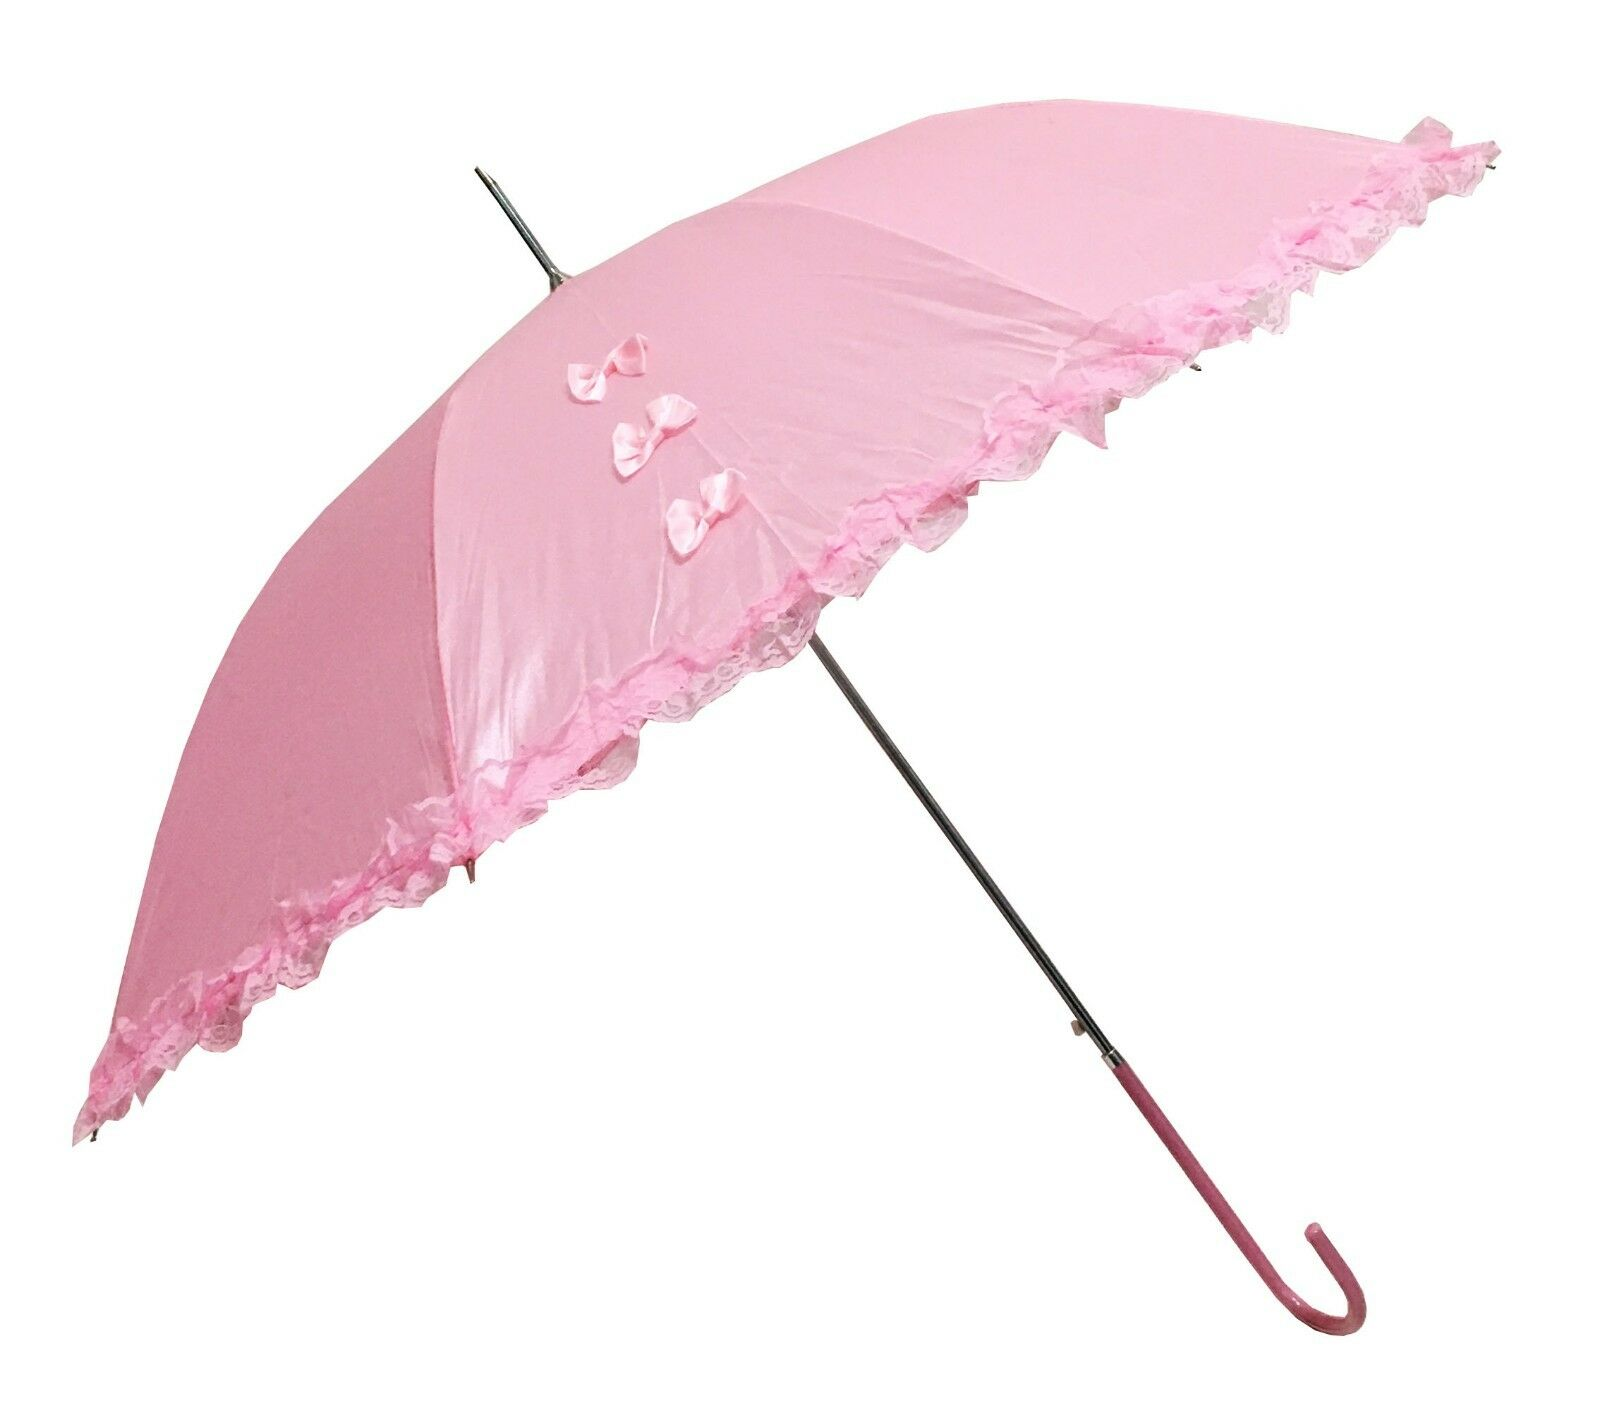 White Umbrella Baby Shower Umbrella Wedding Umbrella Decorative ...